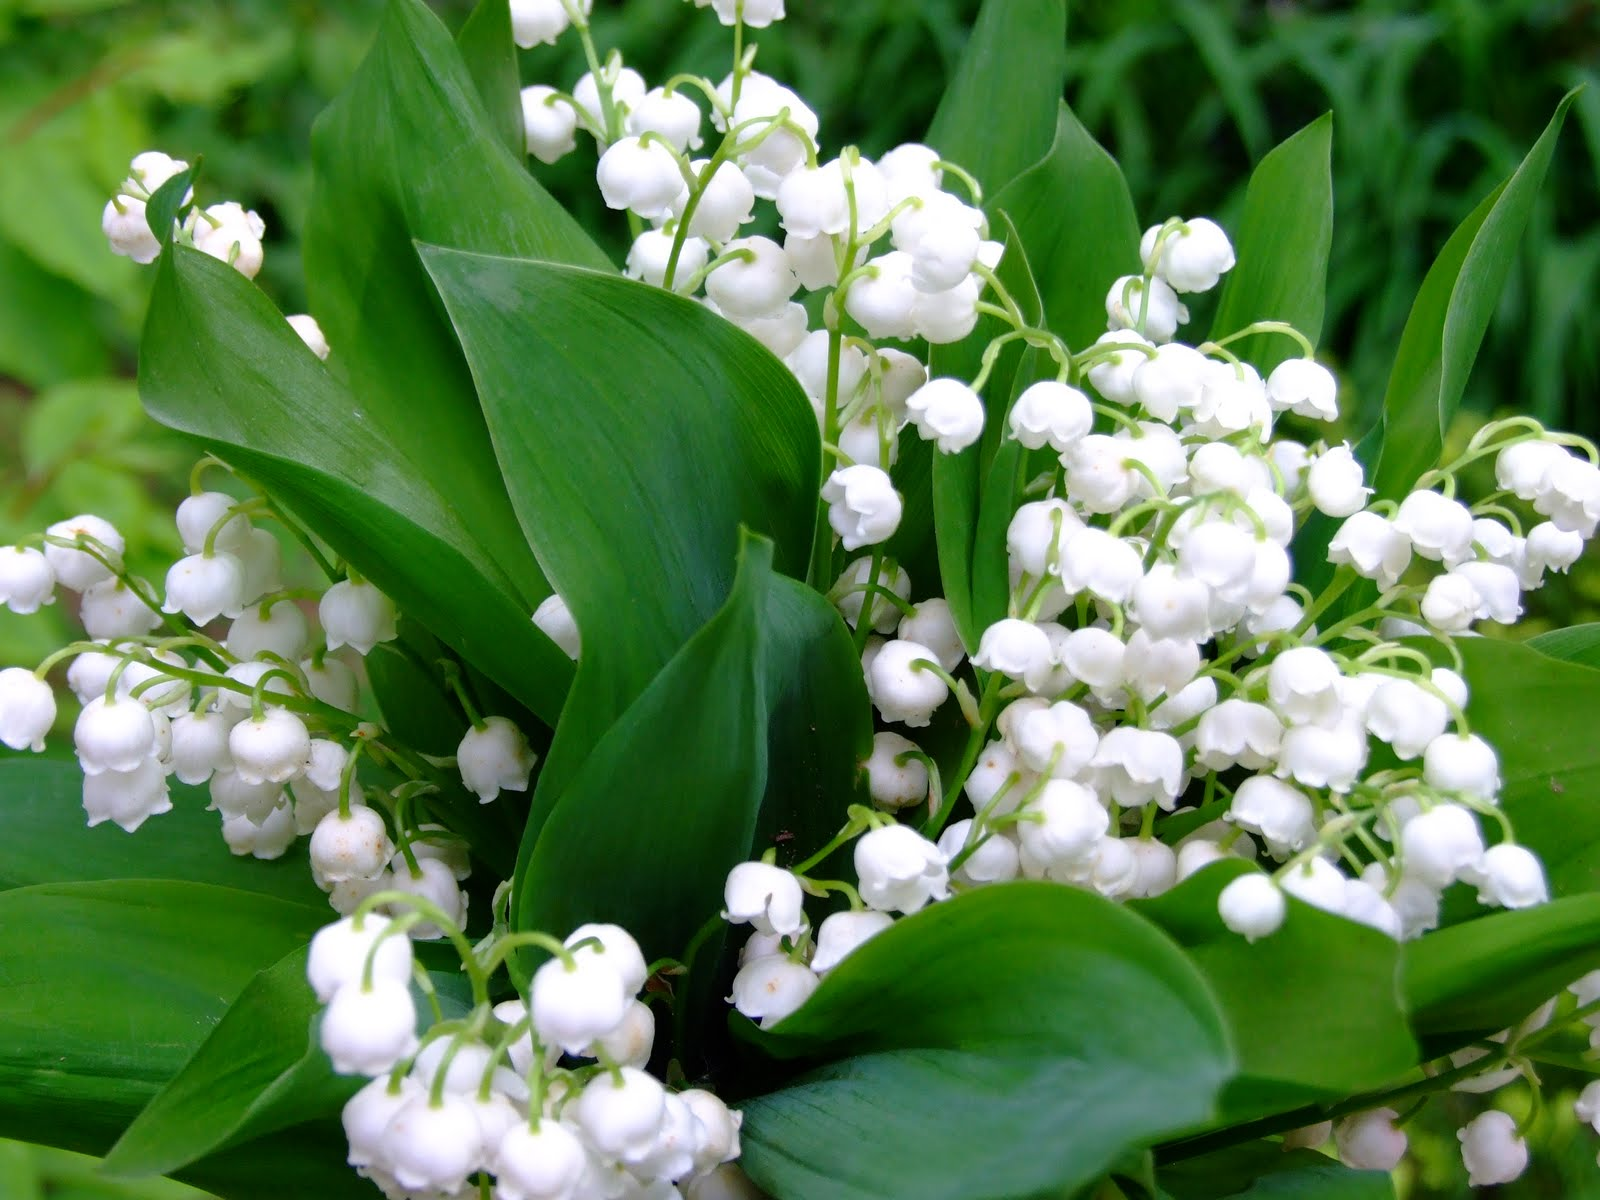 ... you If you saw a beautiful dream about a Lily of the valley